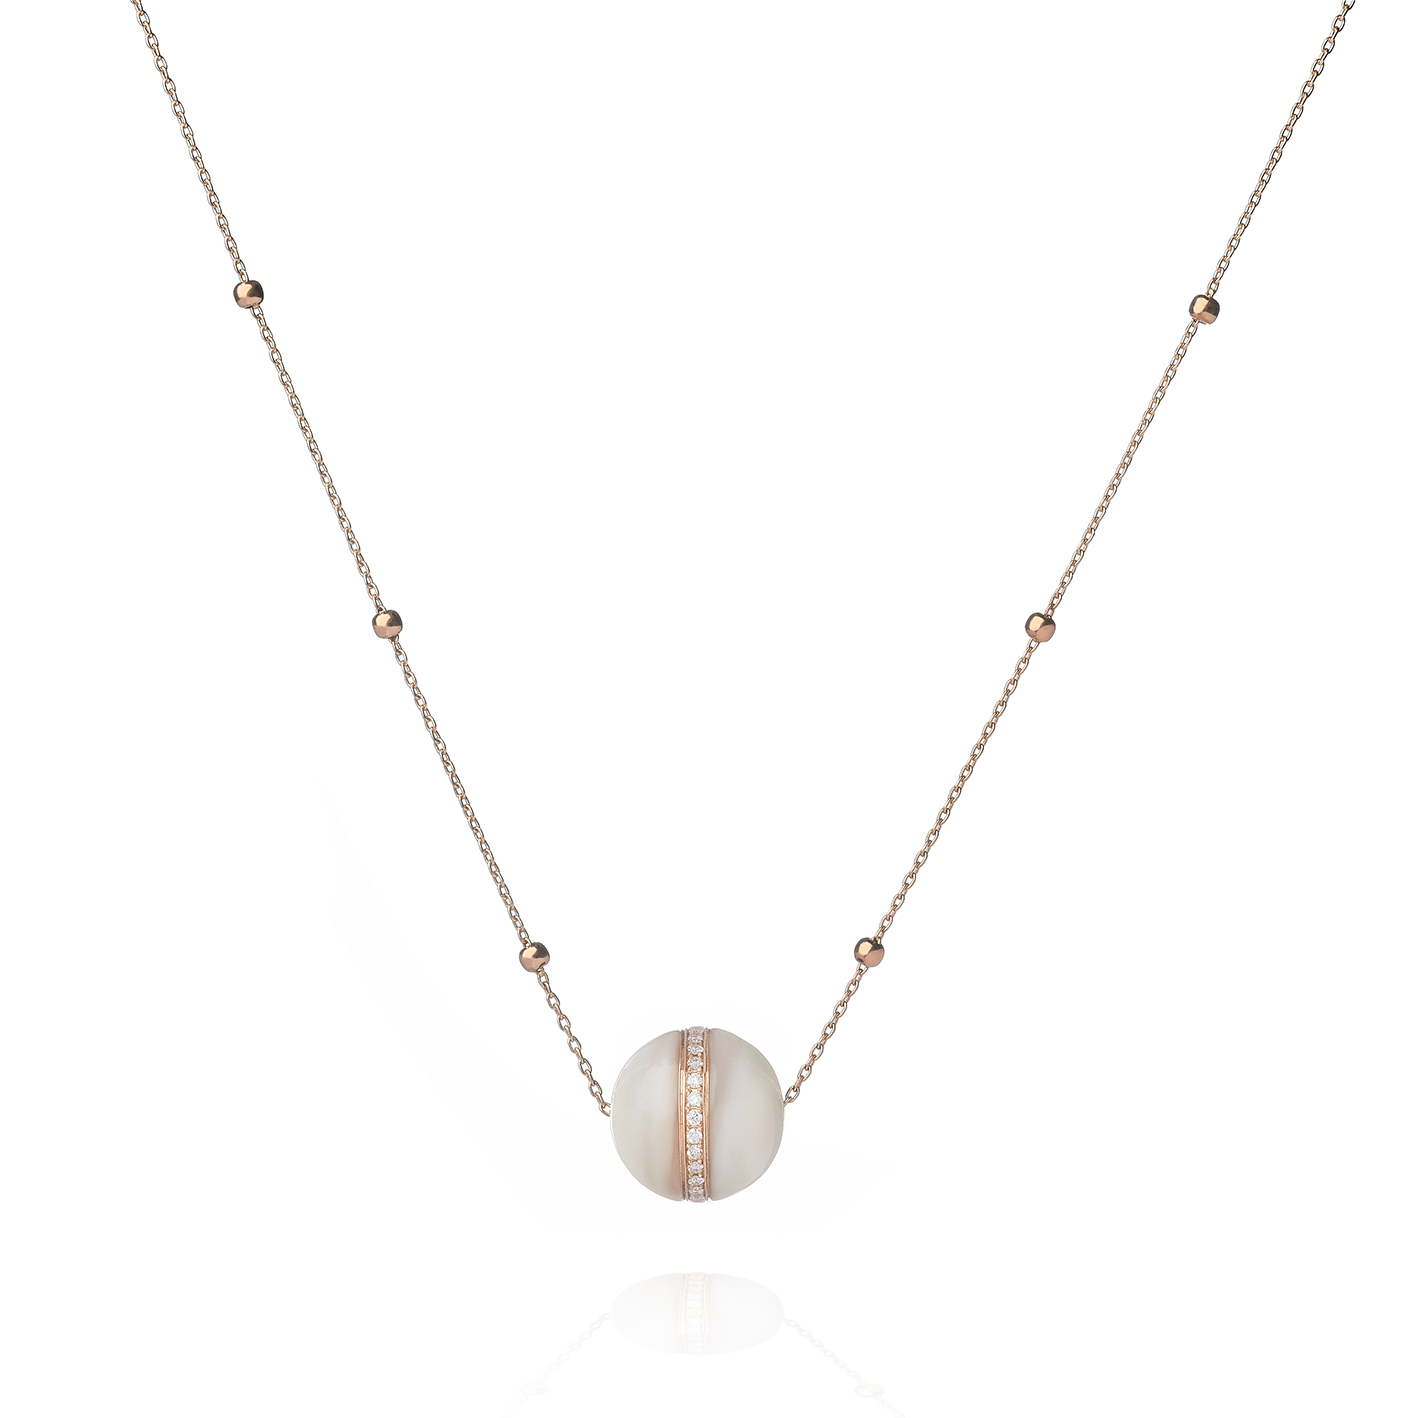 Cabochon Necklace by Dreamboule in 18K Rose Gold with White Diamonds and White Mother of Pearl ($3,600).